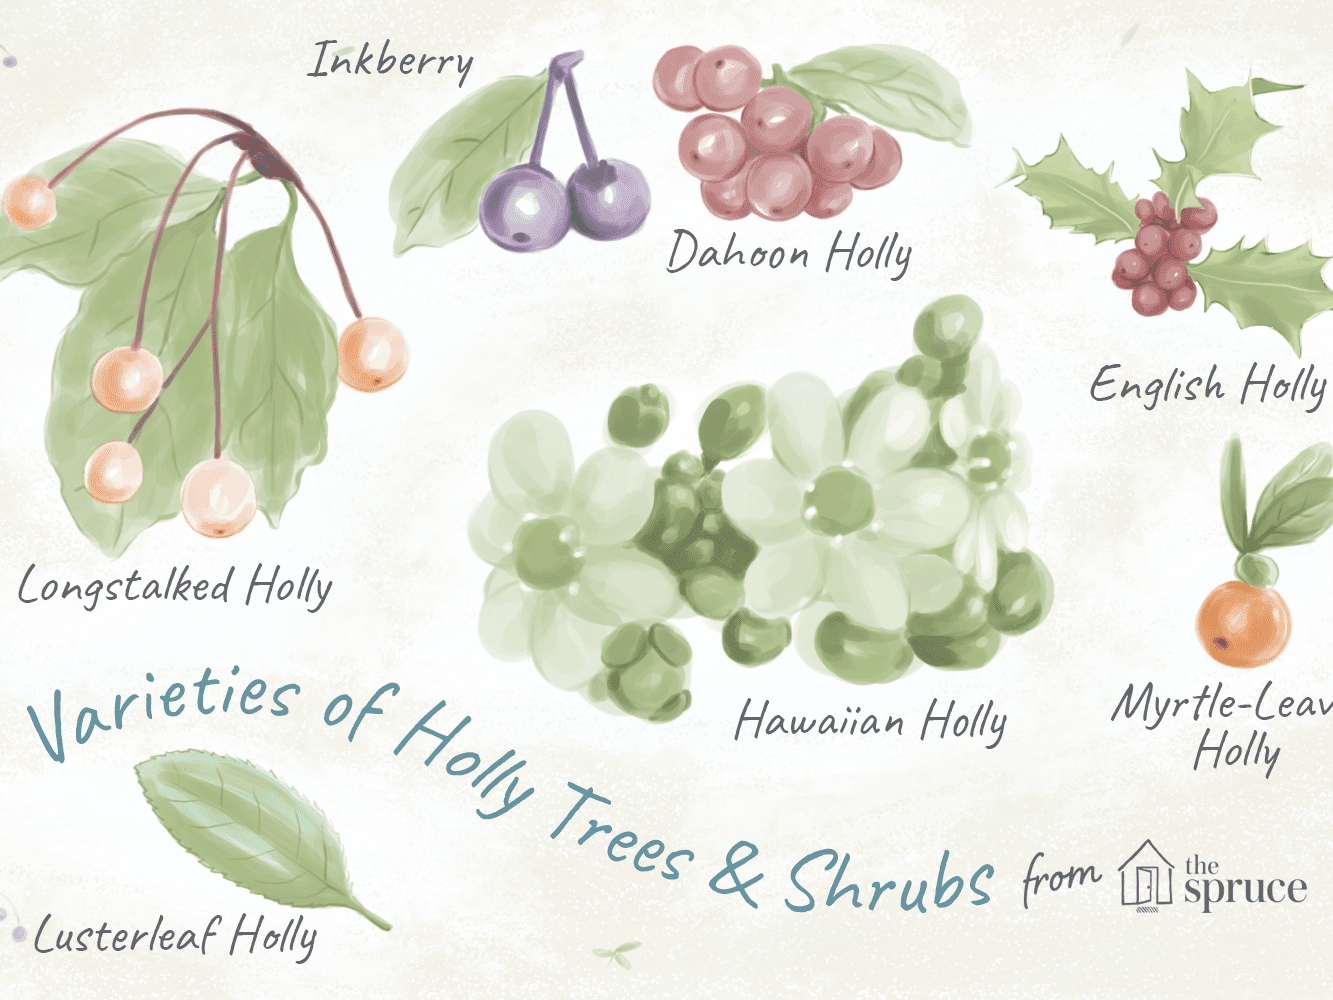 18 Species Of Holly Trees And Shrubs